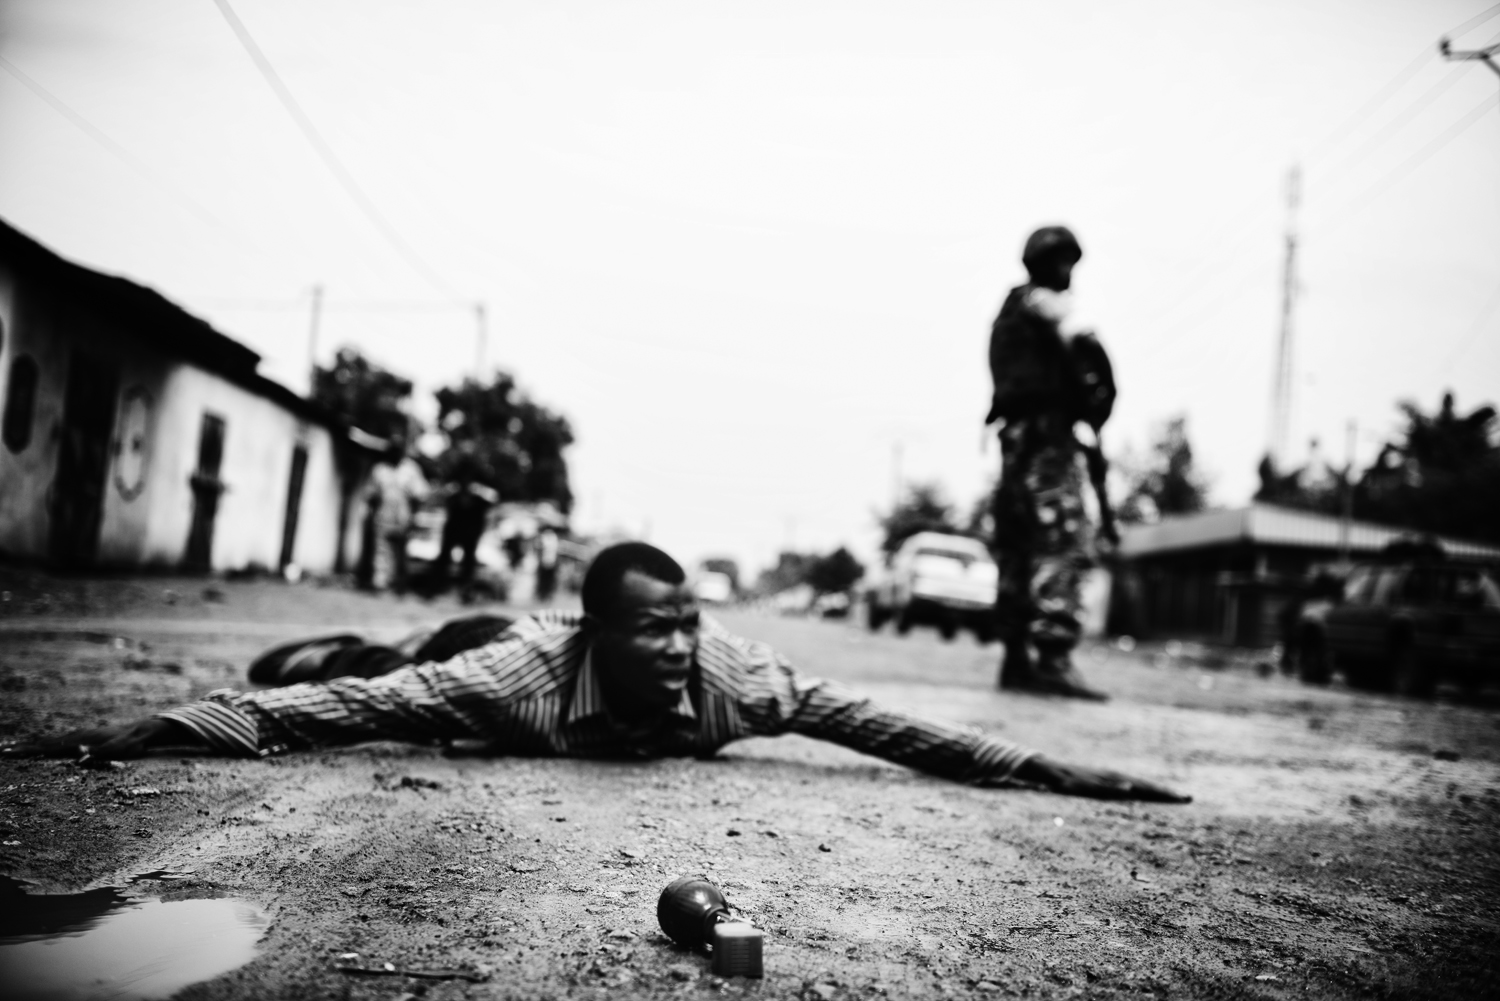 An ex-member of Séléka is immobilized by Burundian troops in the Fifth Arrondissement after he attempted to throw a hand grenade at their patrol. Feb. 1, 2014.